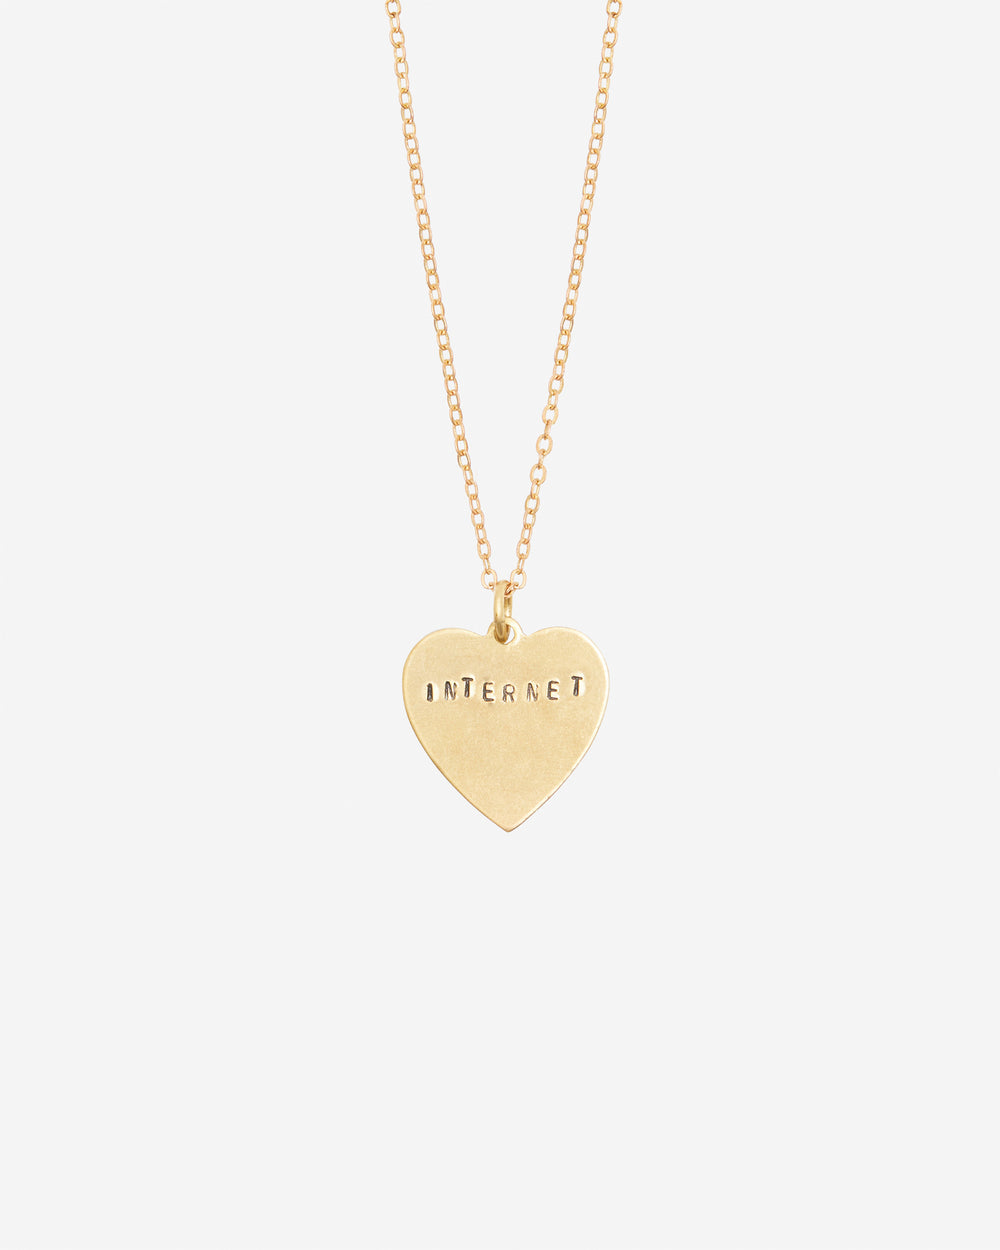 Internet Hand-Stamped Necklace